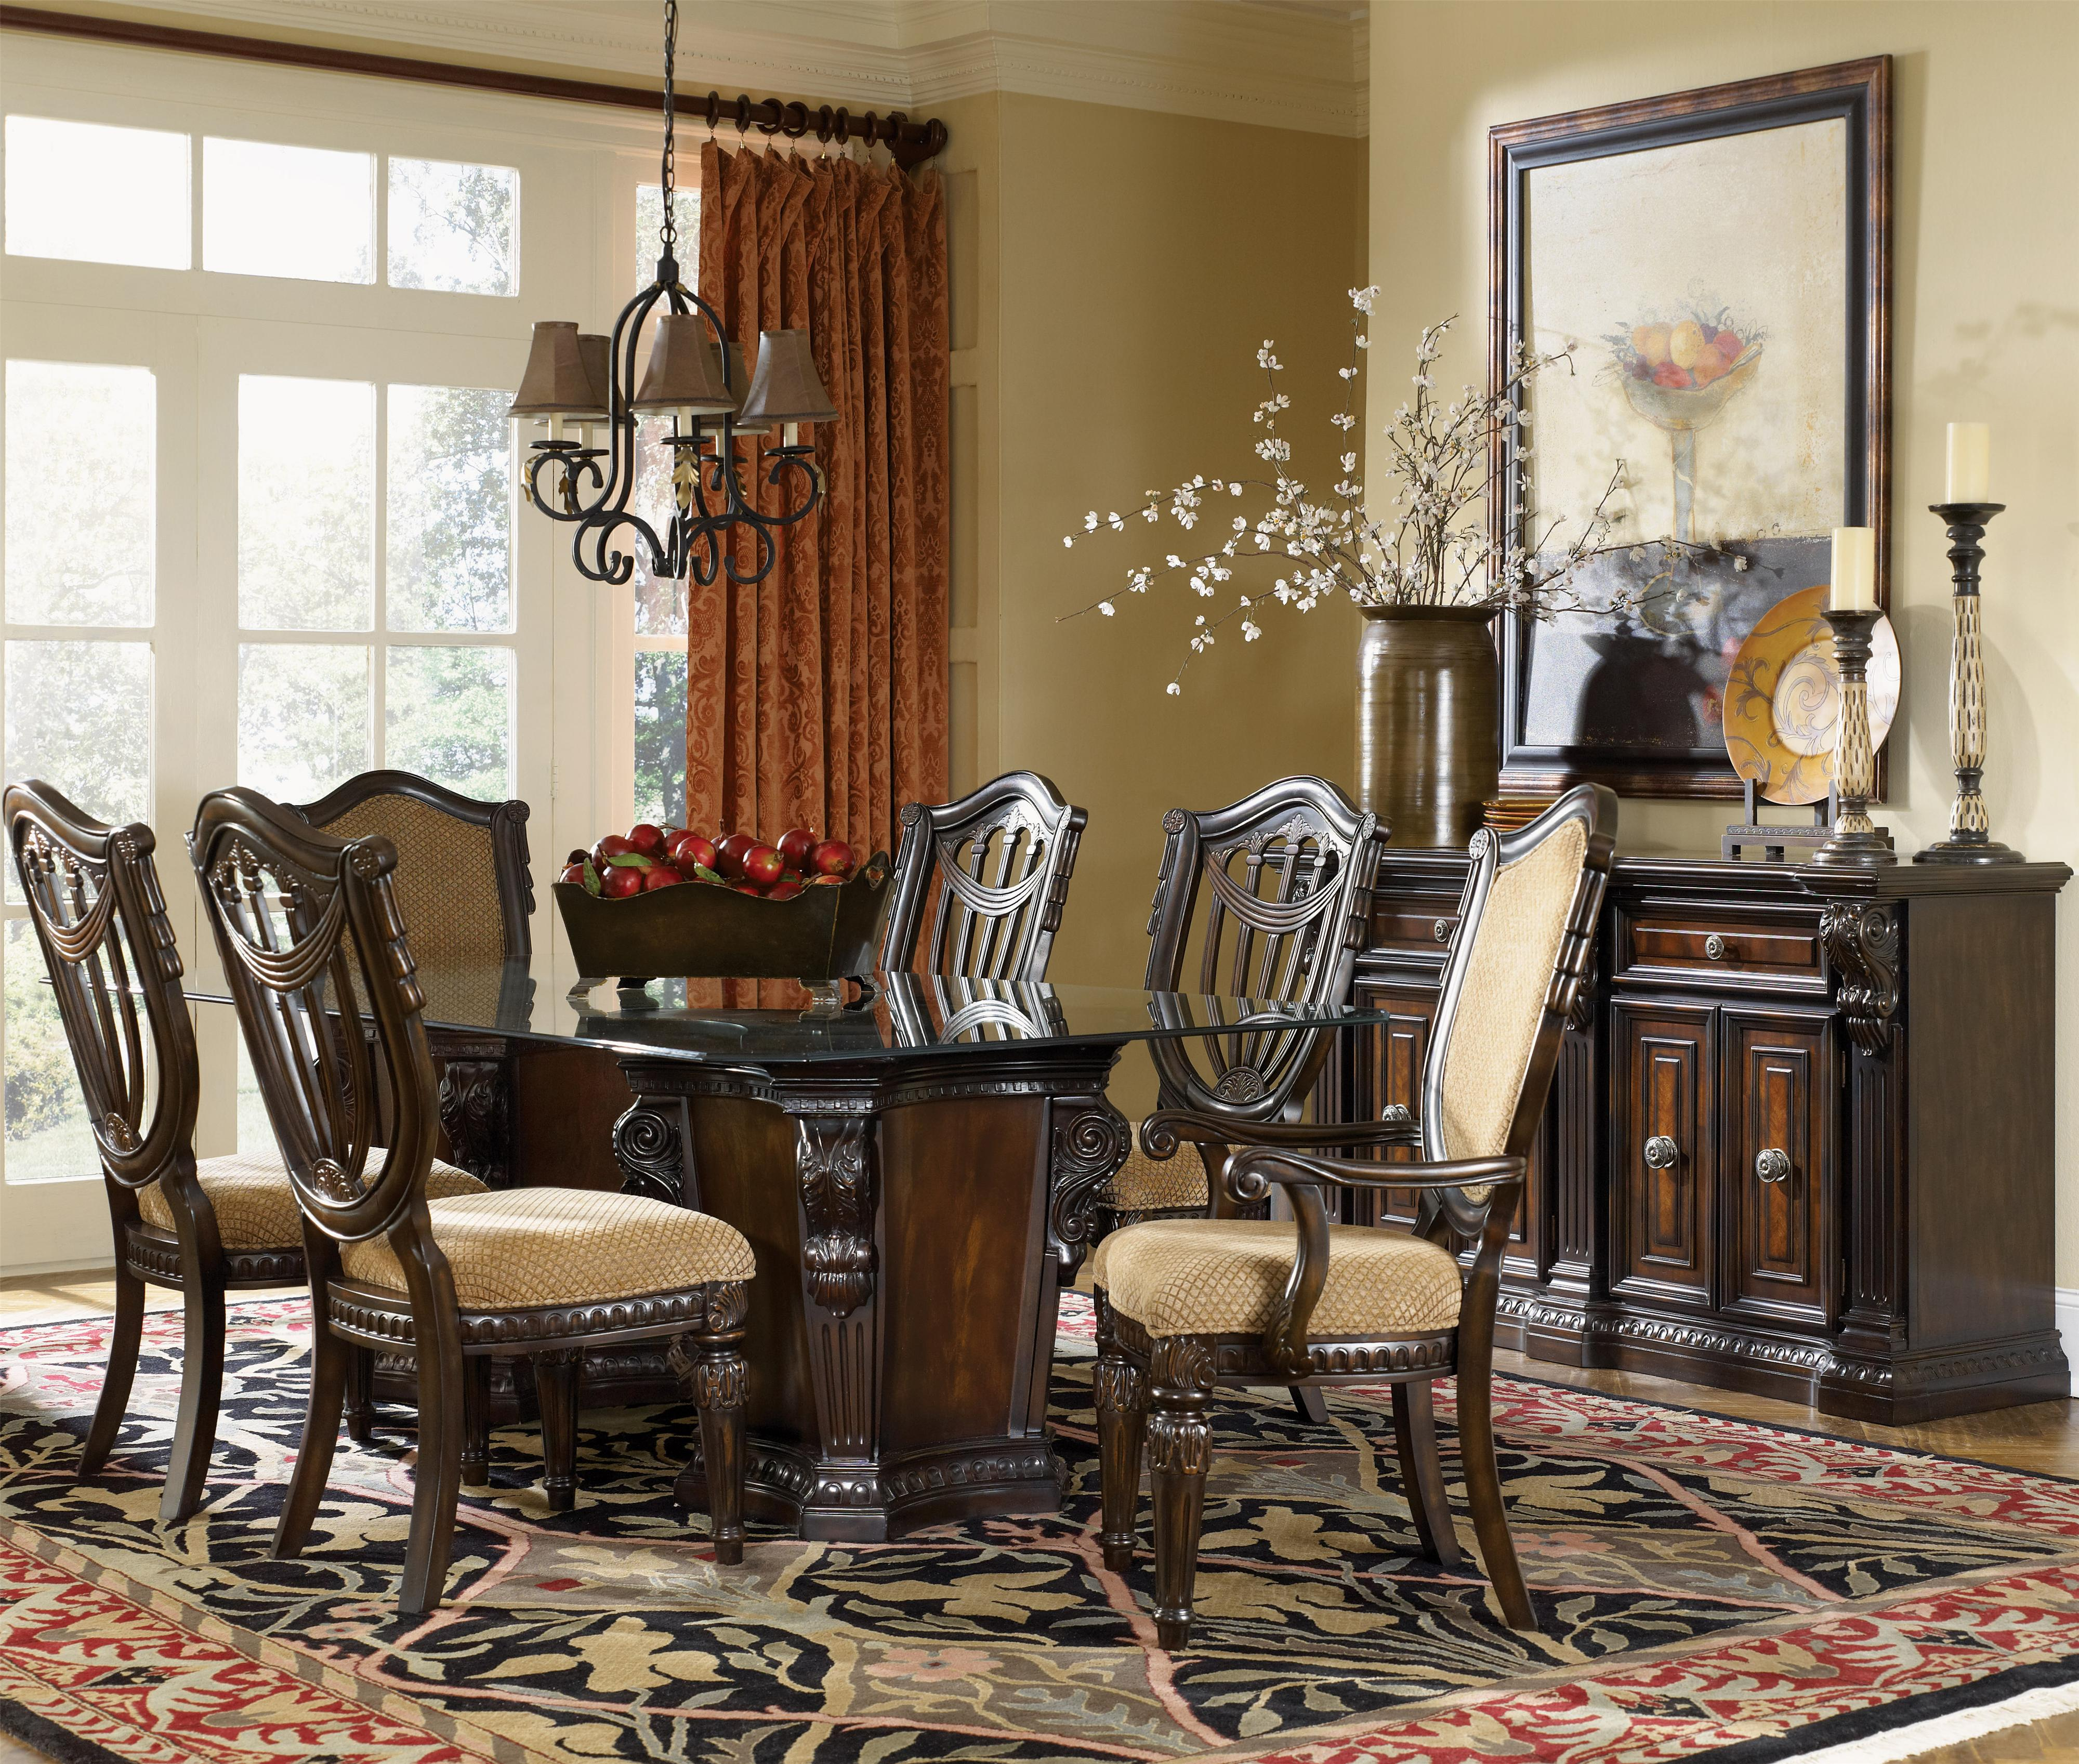 Decor Stunning Royal Furniture Southaven Ms With Amazing: Fairmont Designs Grand Estates Upholstered Arm Chair